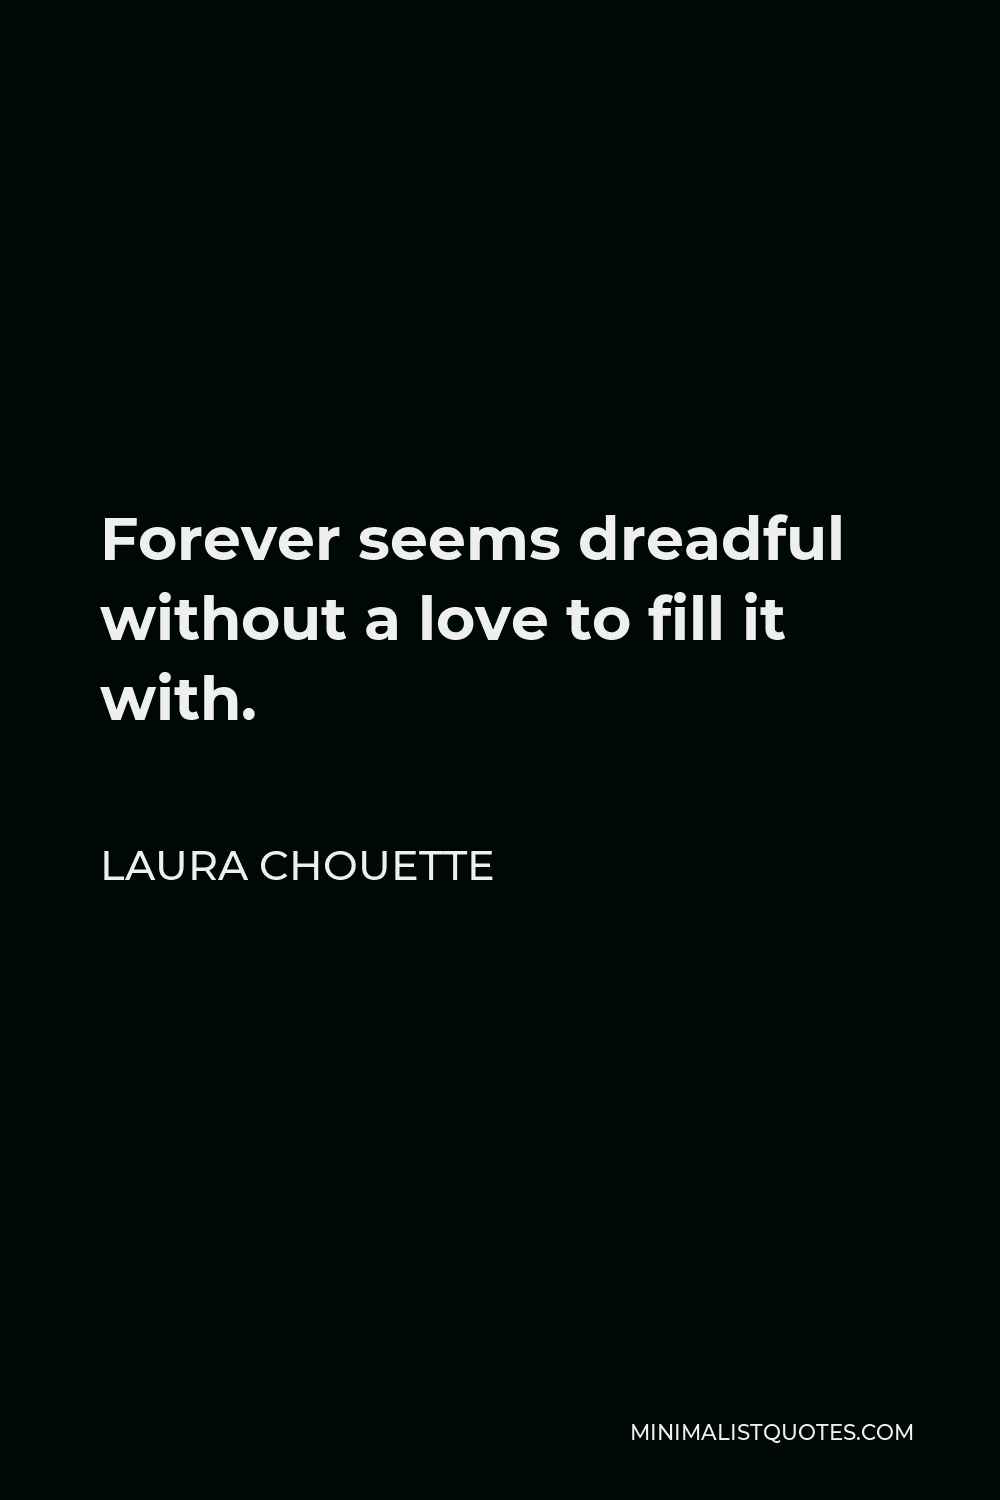 Laura Chouette Quote - Forever seems dreadful without a love to fill it with.